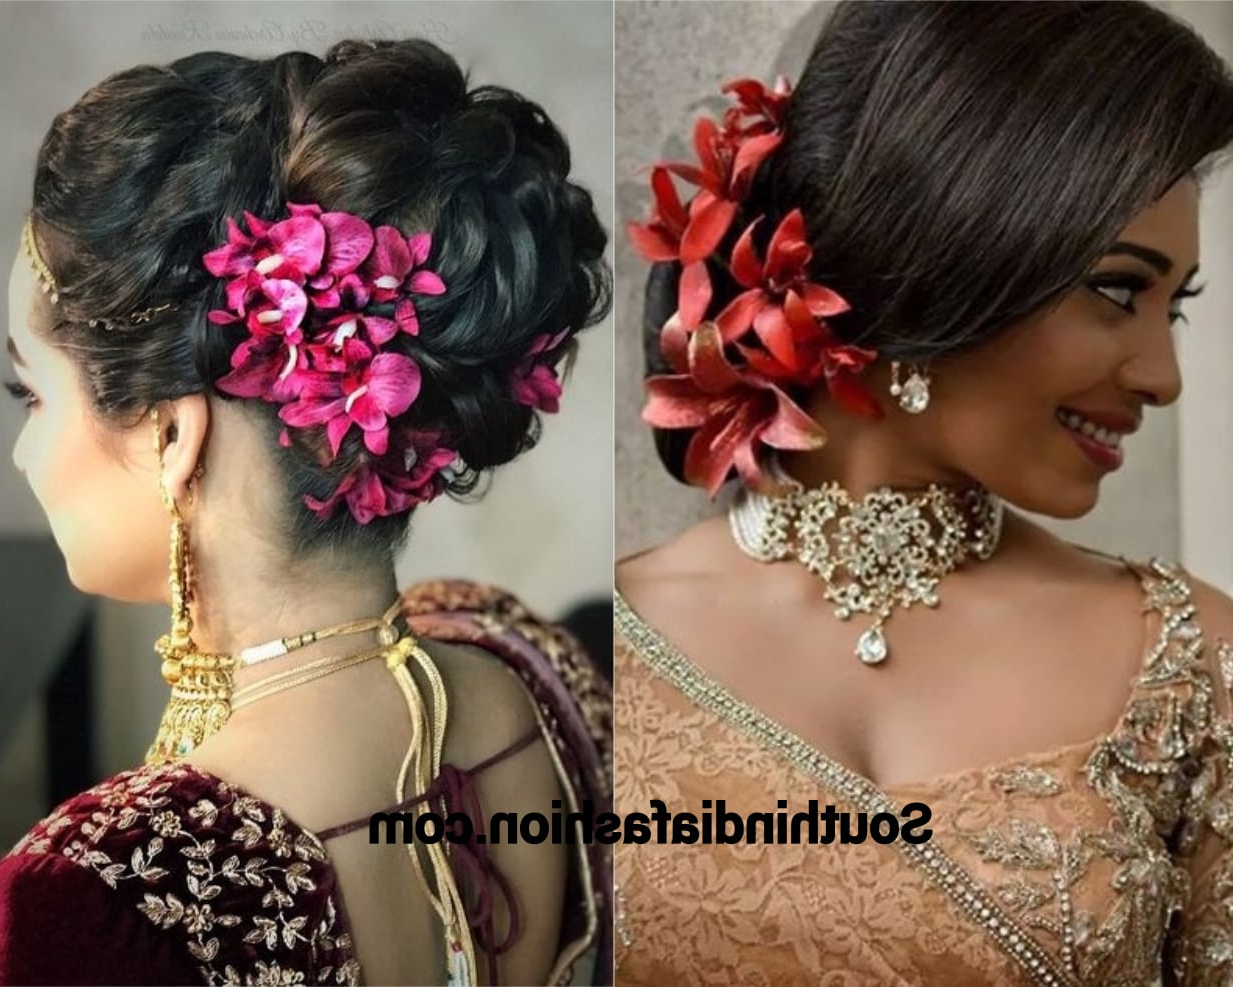 Indian Wedding Bun Hairstyle With Flowers And Gajra! Throughout Most Up To Date Side Bun Prom Hairstyles With Orchids (View 8 of 20)